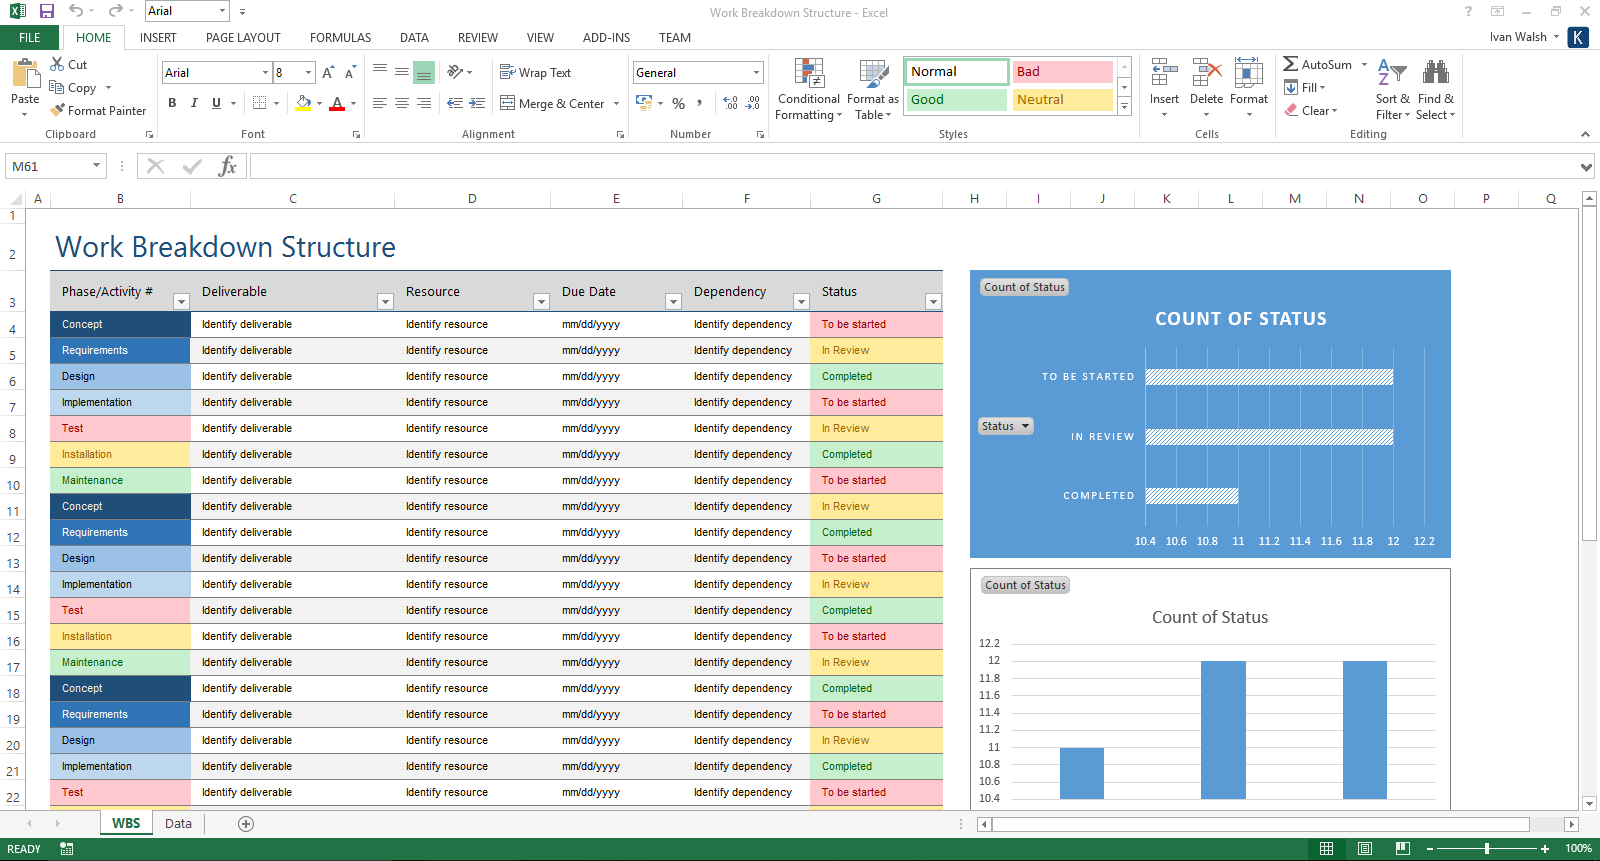 60 x software development lifecycle templates ms word excel visio